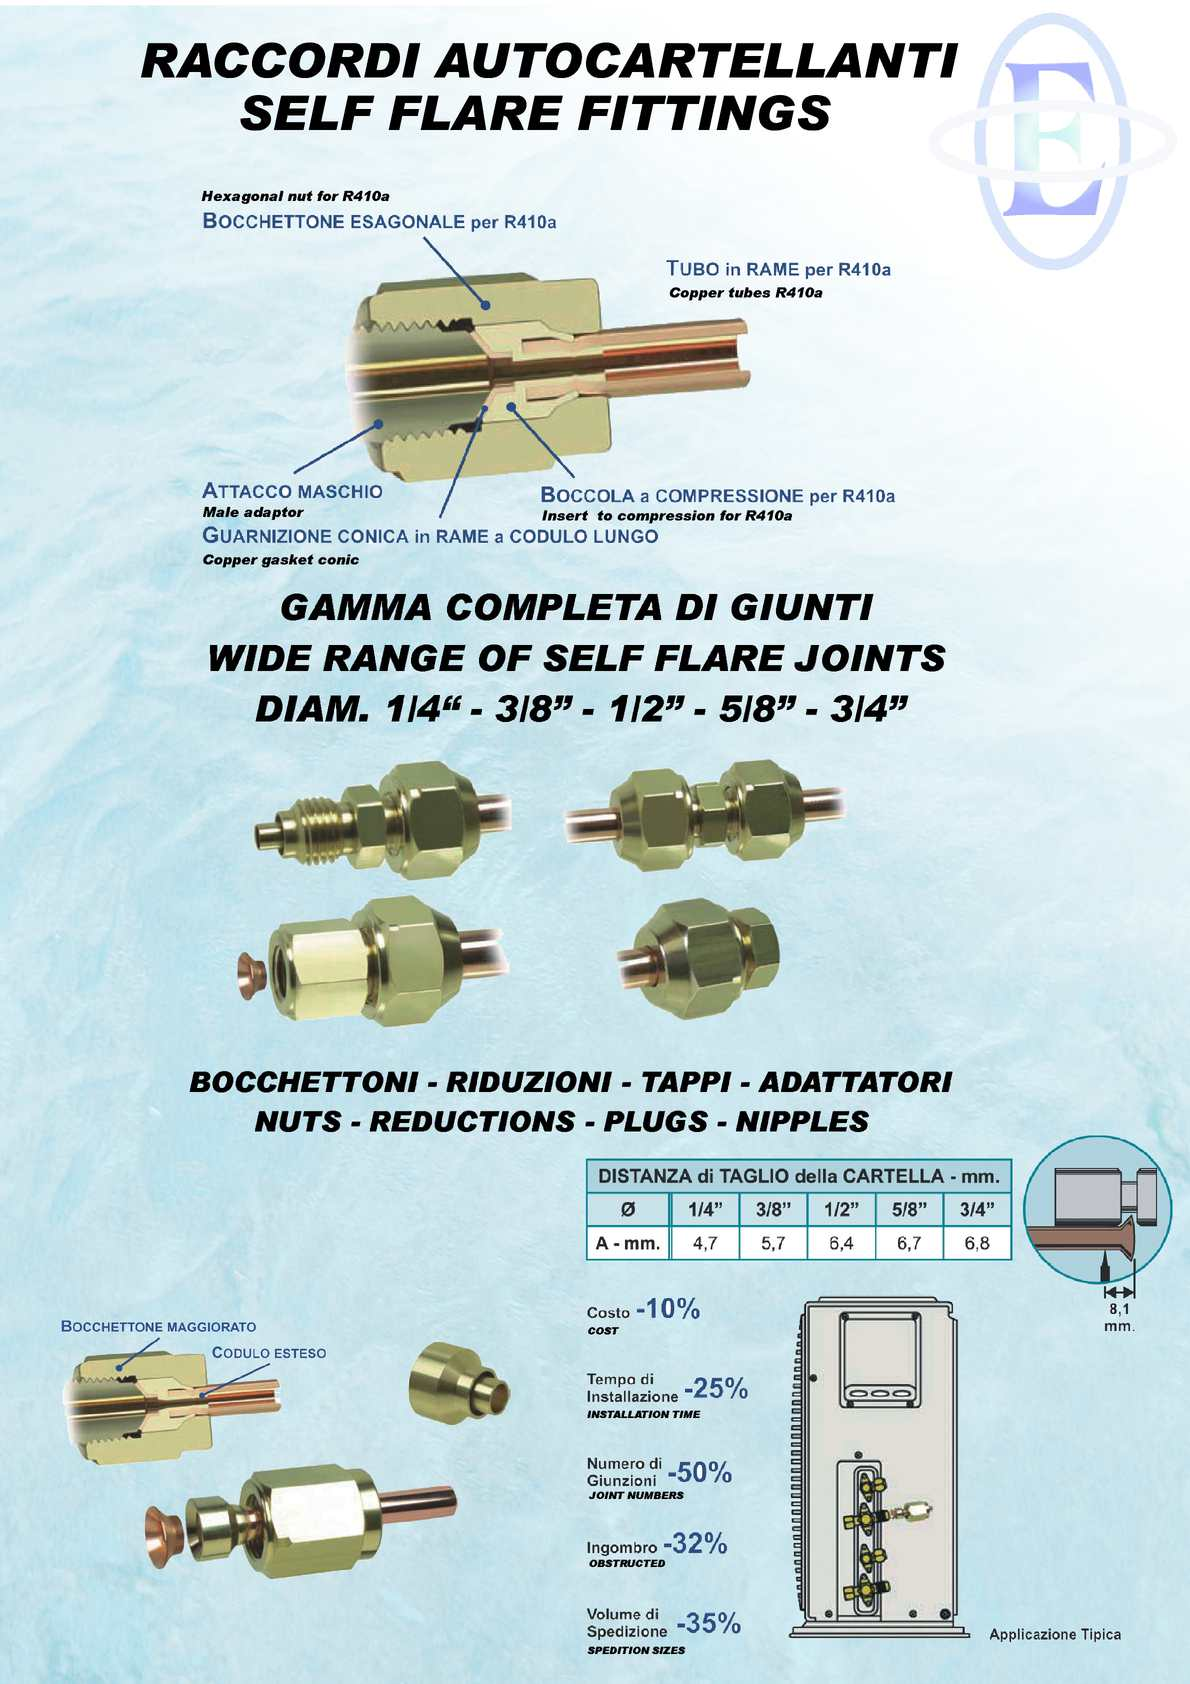 Calaméo - Self flare brass fitting for copper tubes air conditioning